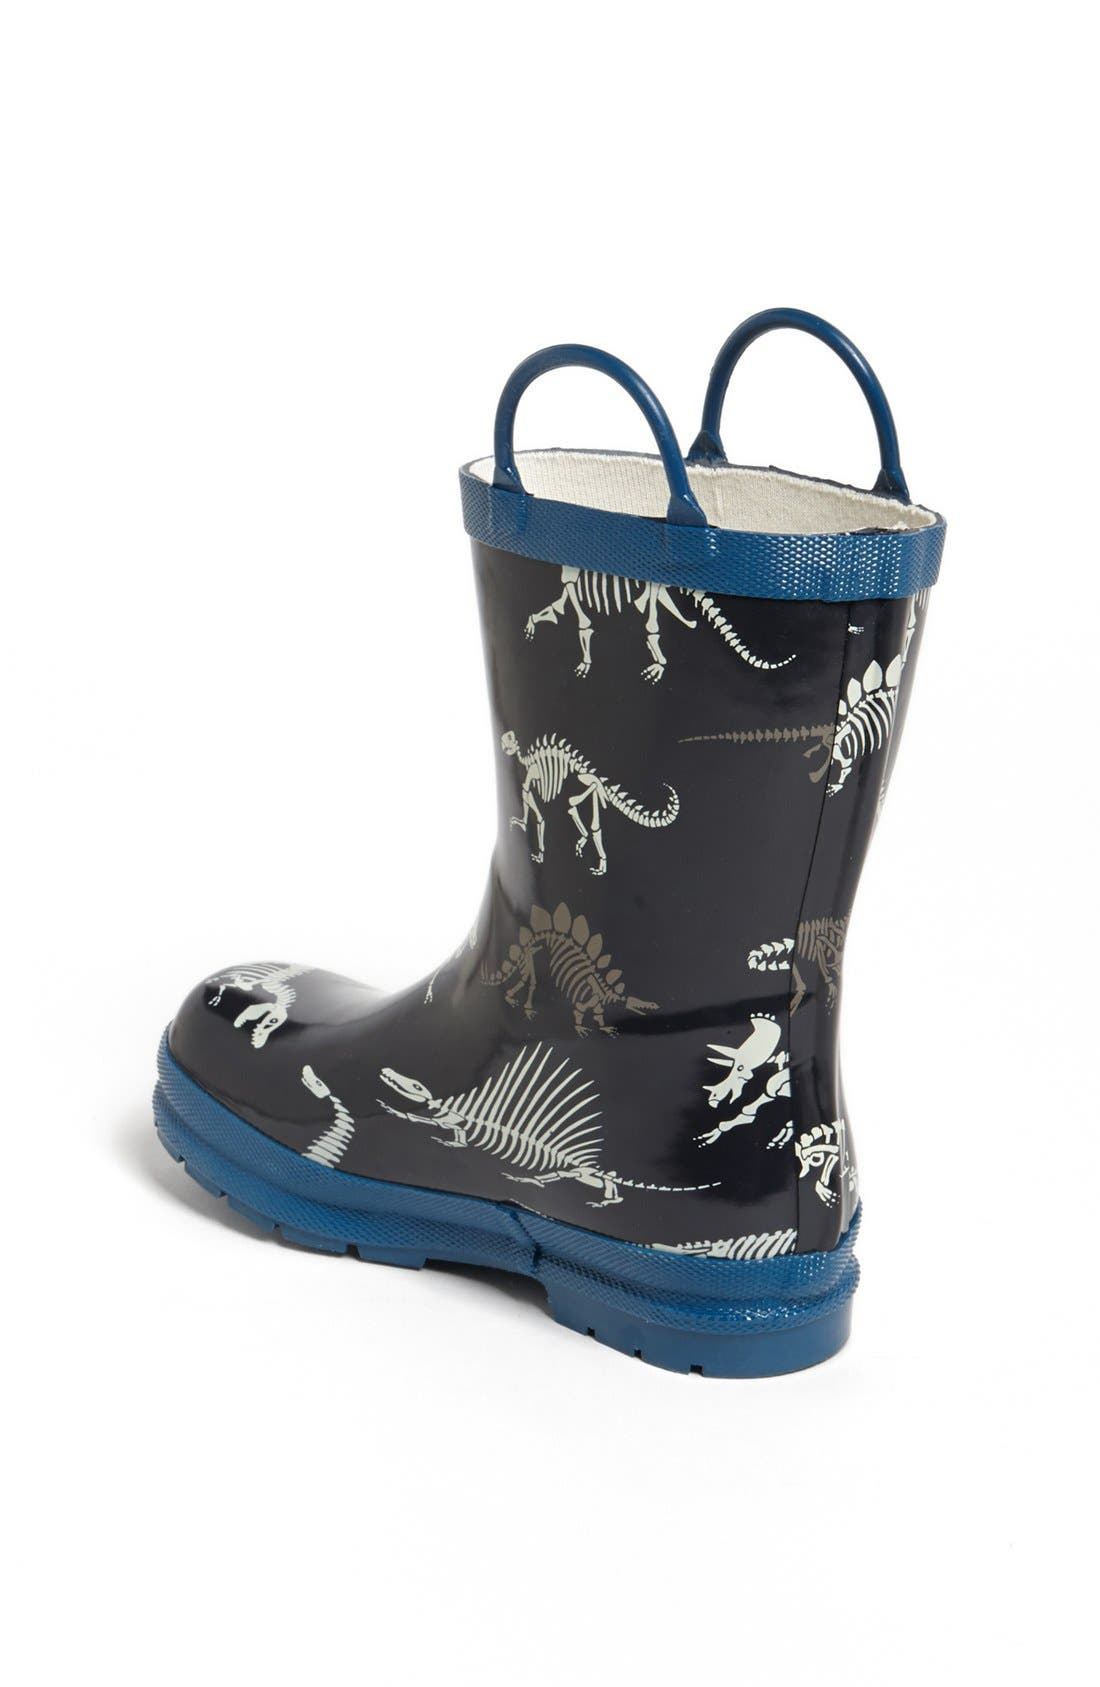 Alternate Image 2  - Hatley 'Dino Bones' Rain Boot (Walker, Toddler & Little Kid)